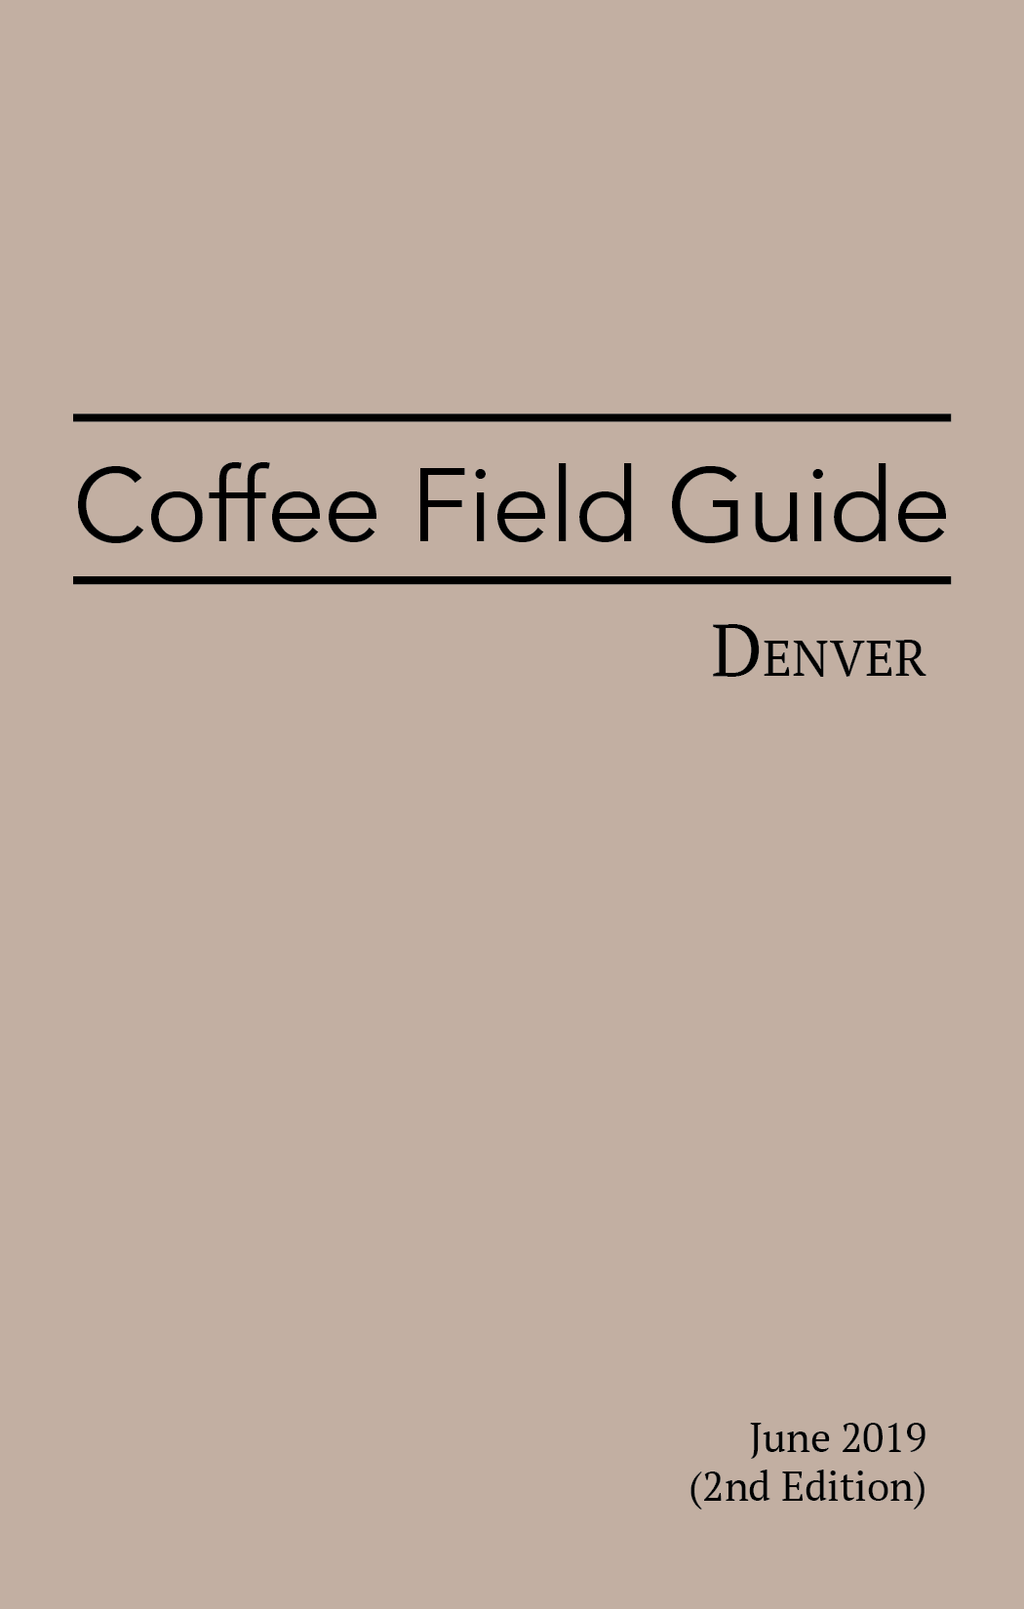 Coffee Field Guide / Denver, 2nd Edition